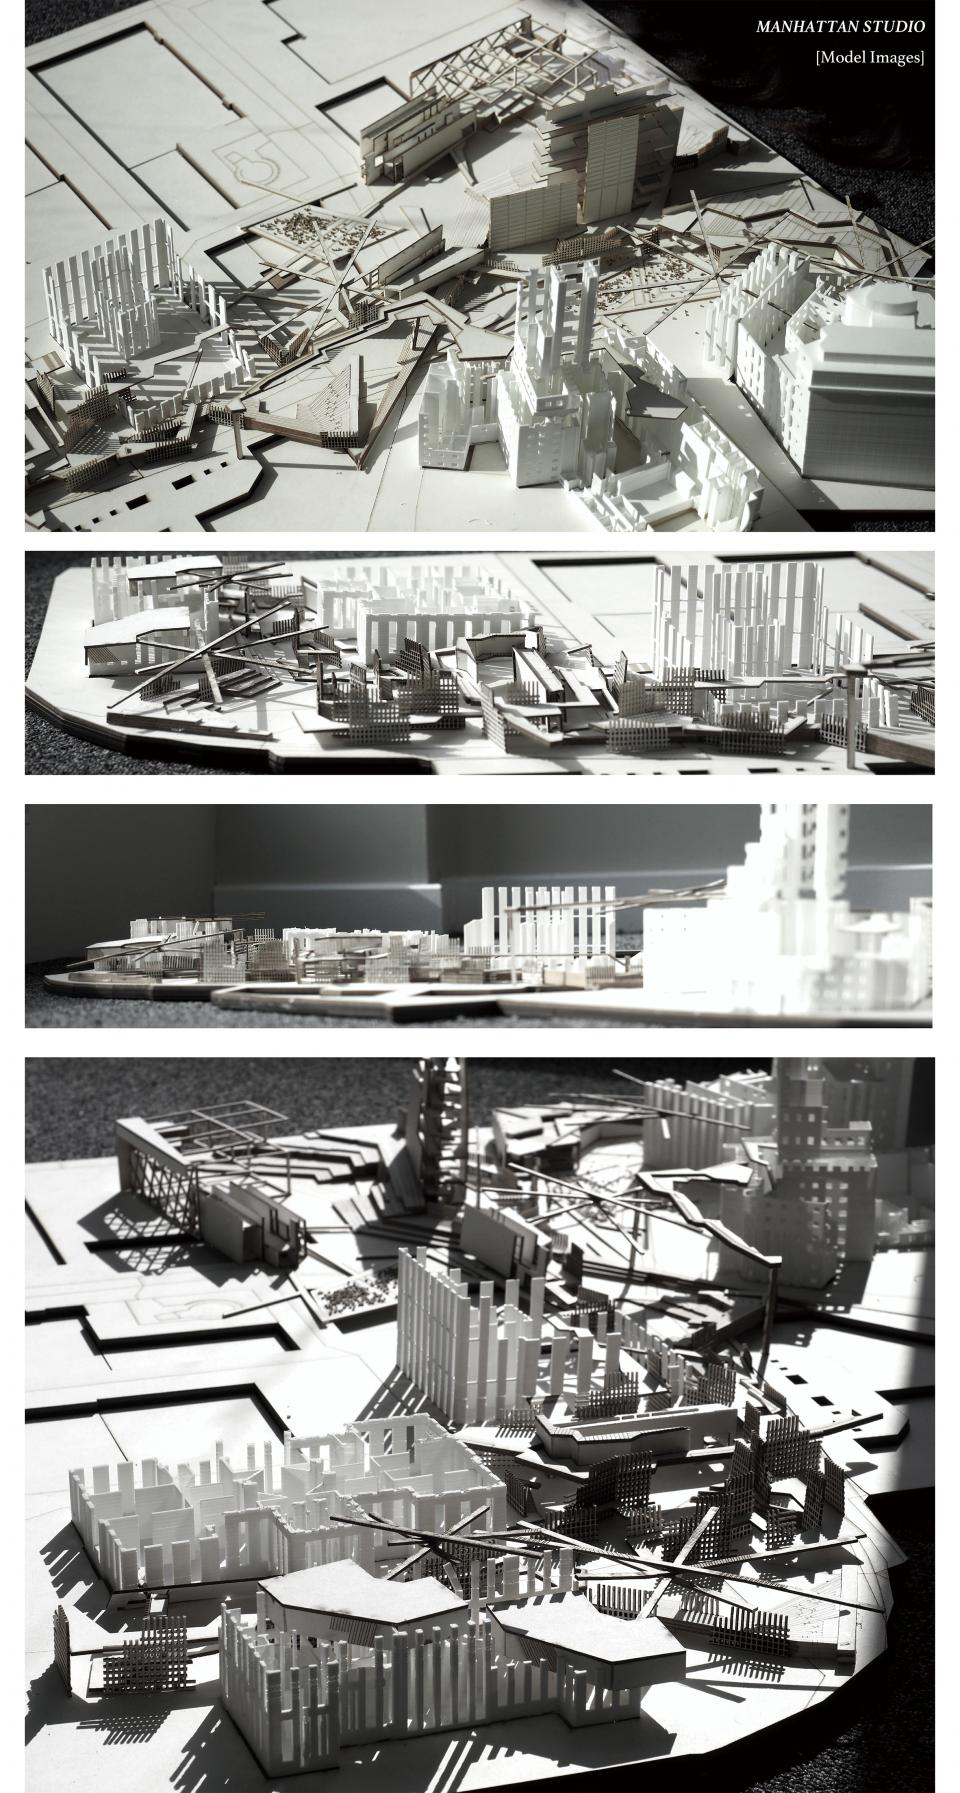 Hanyue LU_Architecture - MArch_2020_MANHATTAN-Landscape of engagement between the citizen of the city and law of city_9.jpg